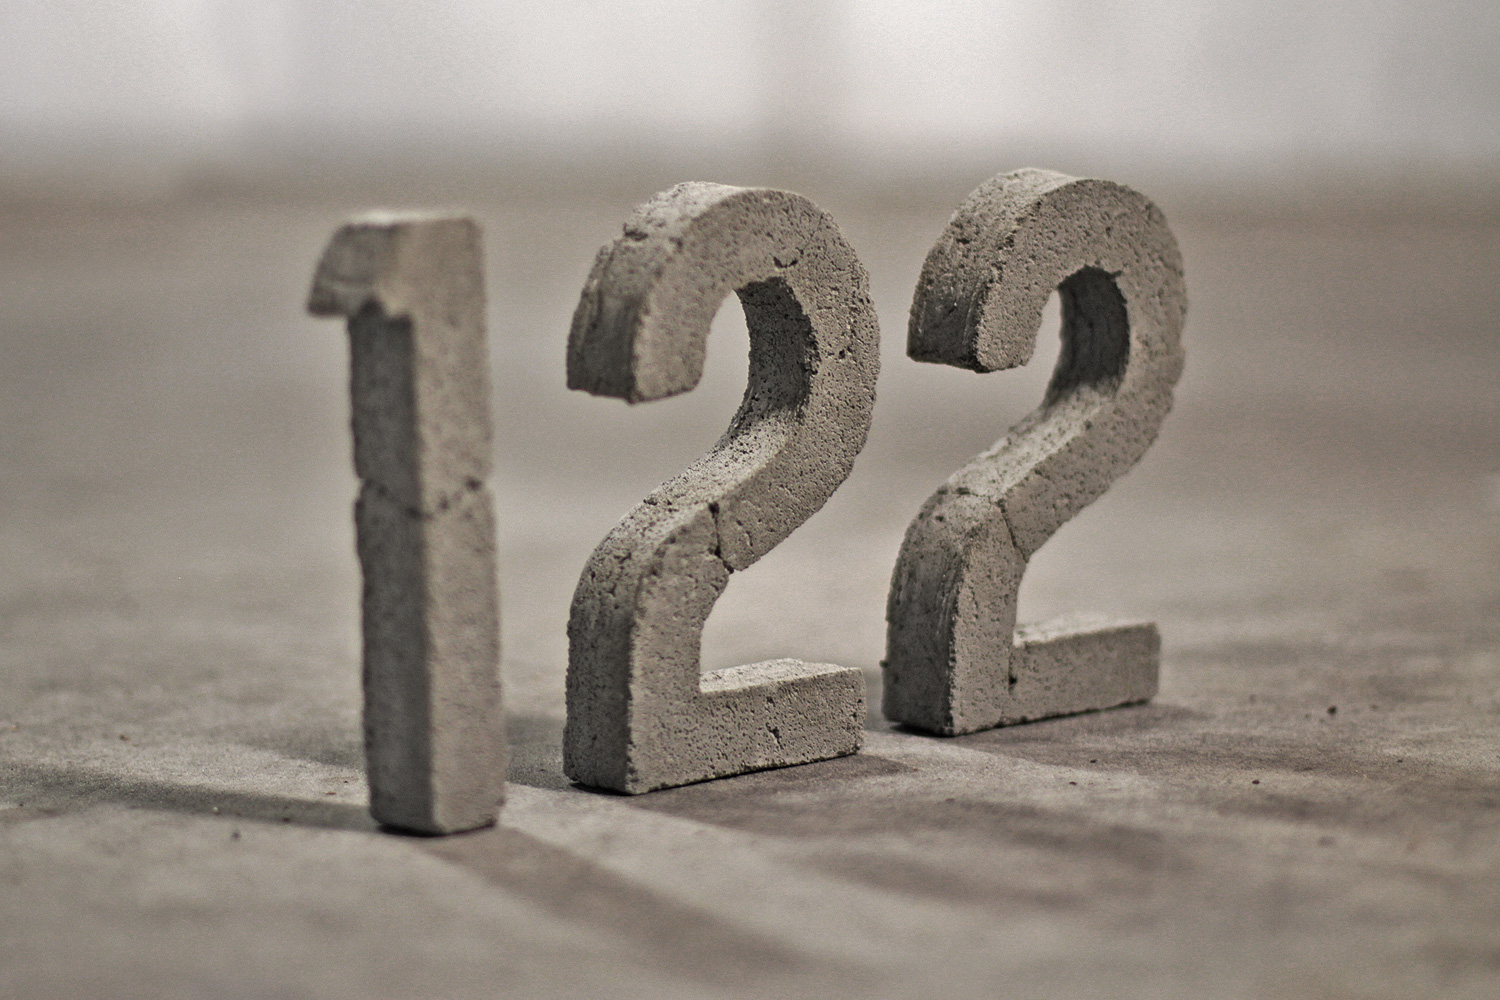 122 CONCRETE NUMBERS   Back in December of last year, I was freelancing at Local Peoples / Assemble Projects on the design of the website for their small-footprint living development 122 Roseneath St. Read the process diary for creating these concrete numbers. READ MORE